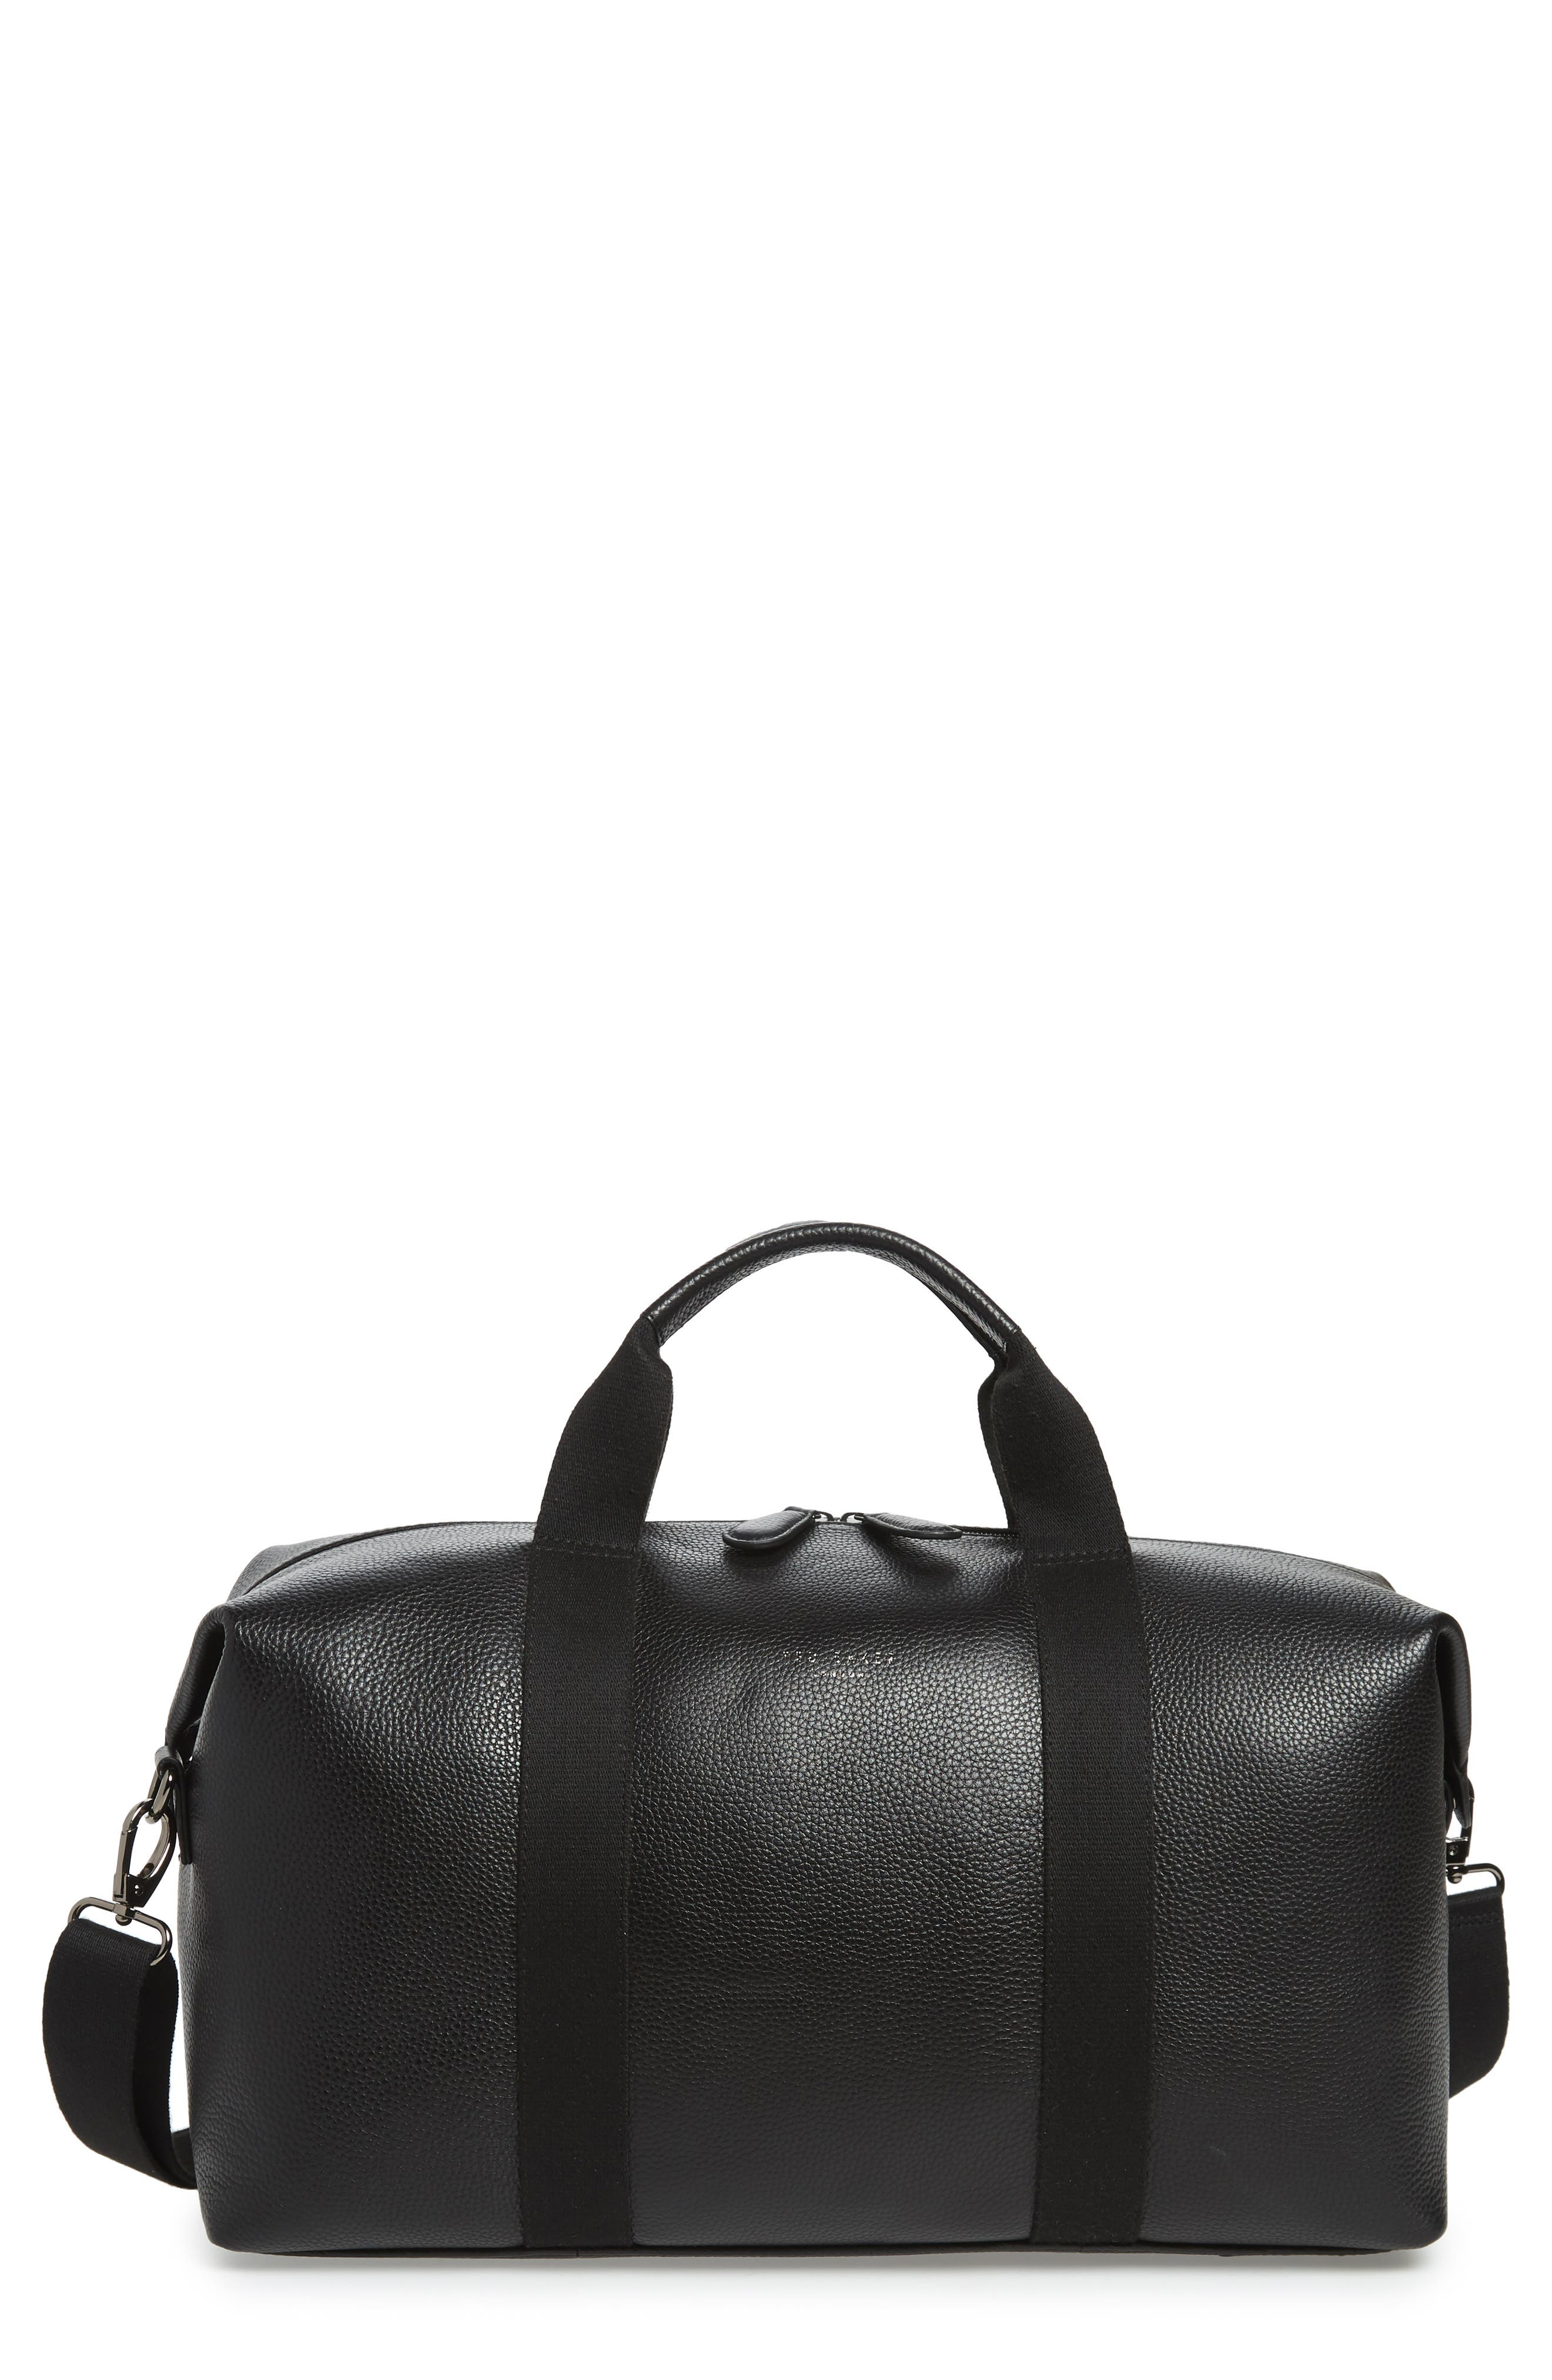 TED BAKER Holding Leather Duffel Bag - Black